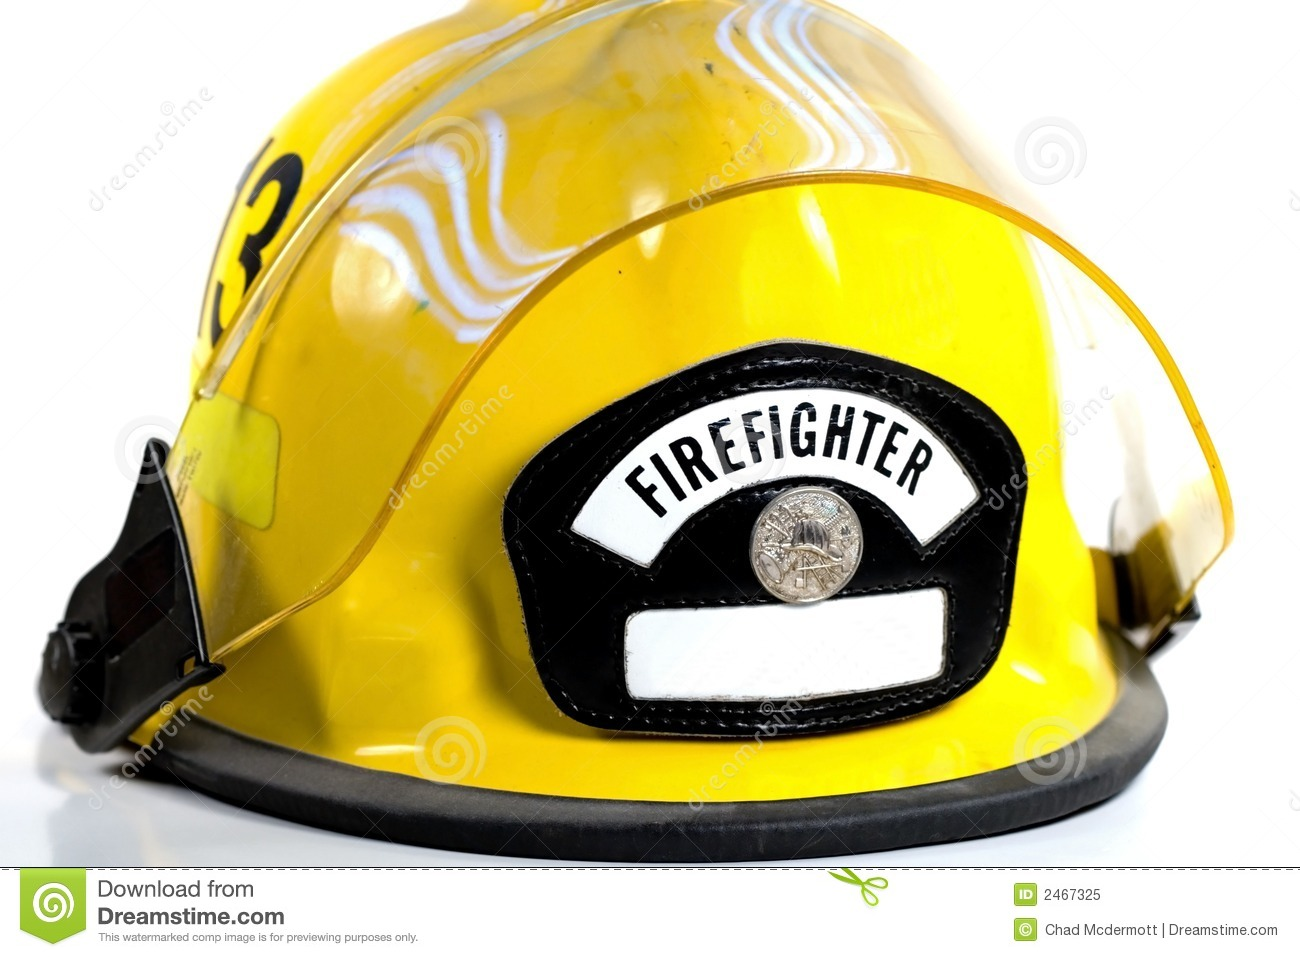 Fireman S Helmet Royalty Free Stock Photo Image 2467325 3GIqVe Clipart on cartoon boy mouth